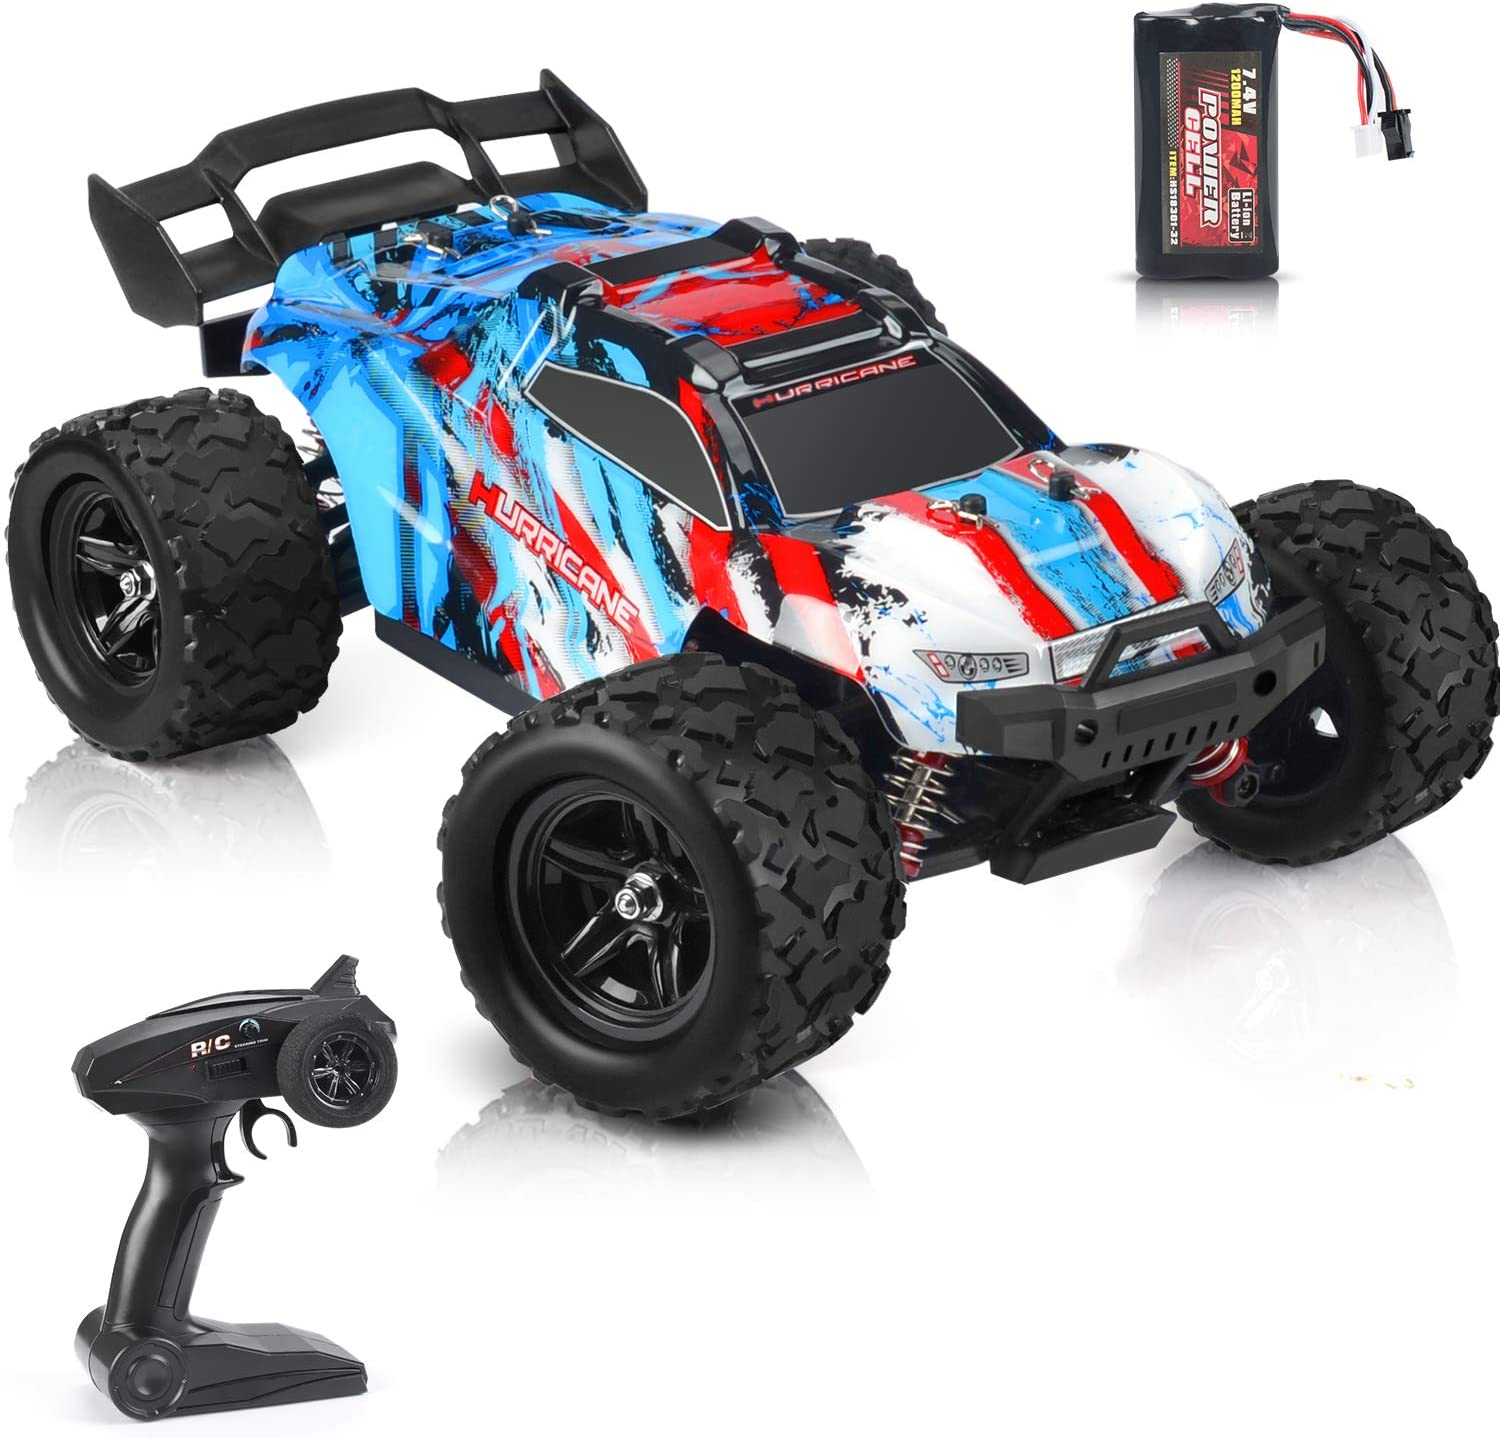 kolegend RC Car Remote Control Car 40 km/h RTR RC Monster Truck 1200 mah Rechargable Battery 4WD for Adults & Kids (Red)